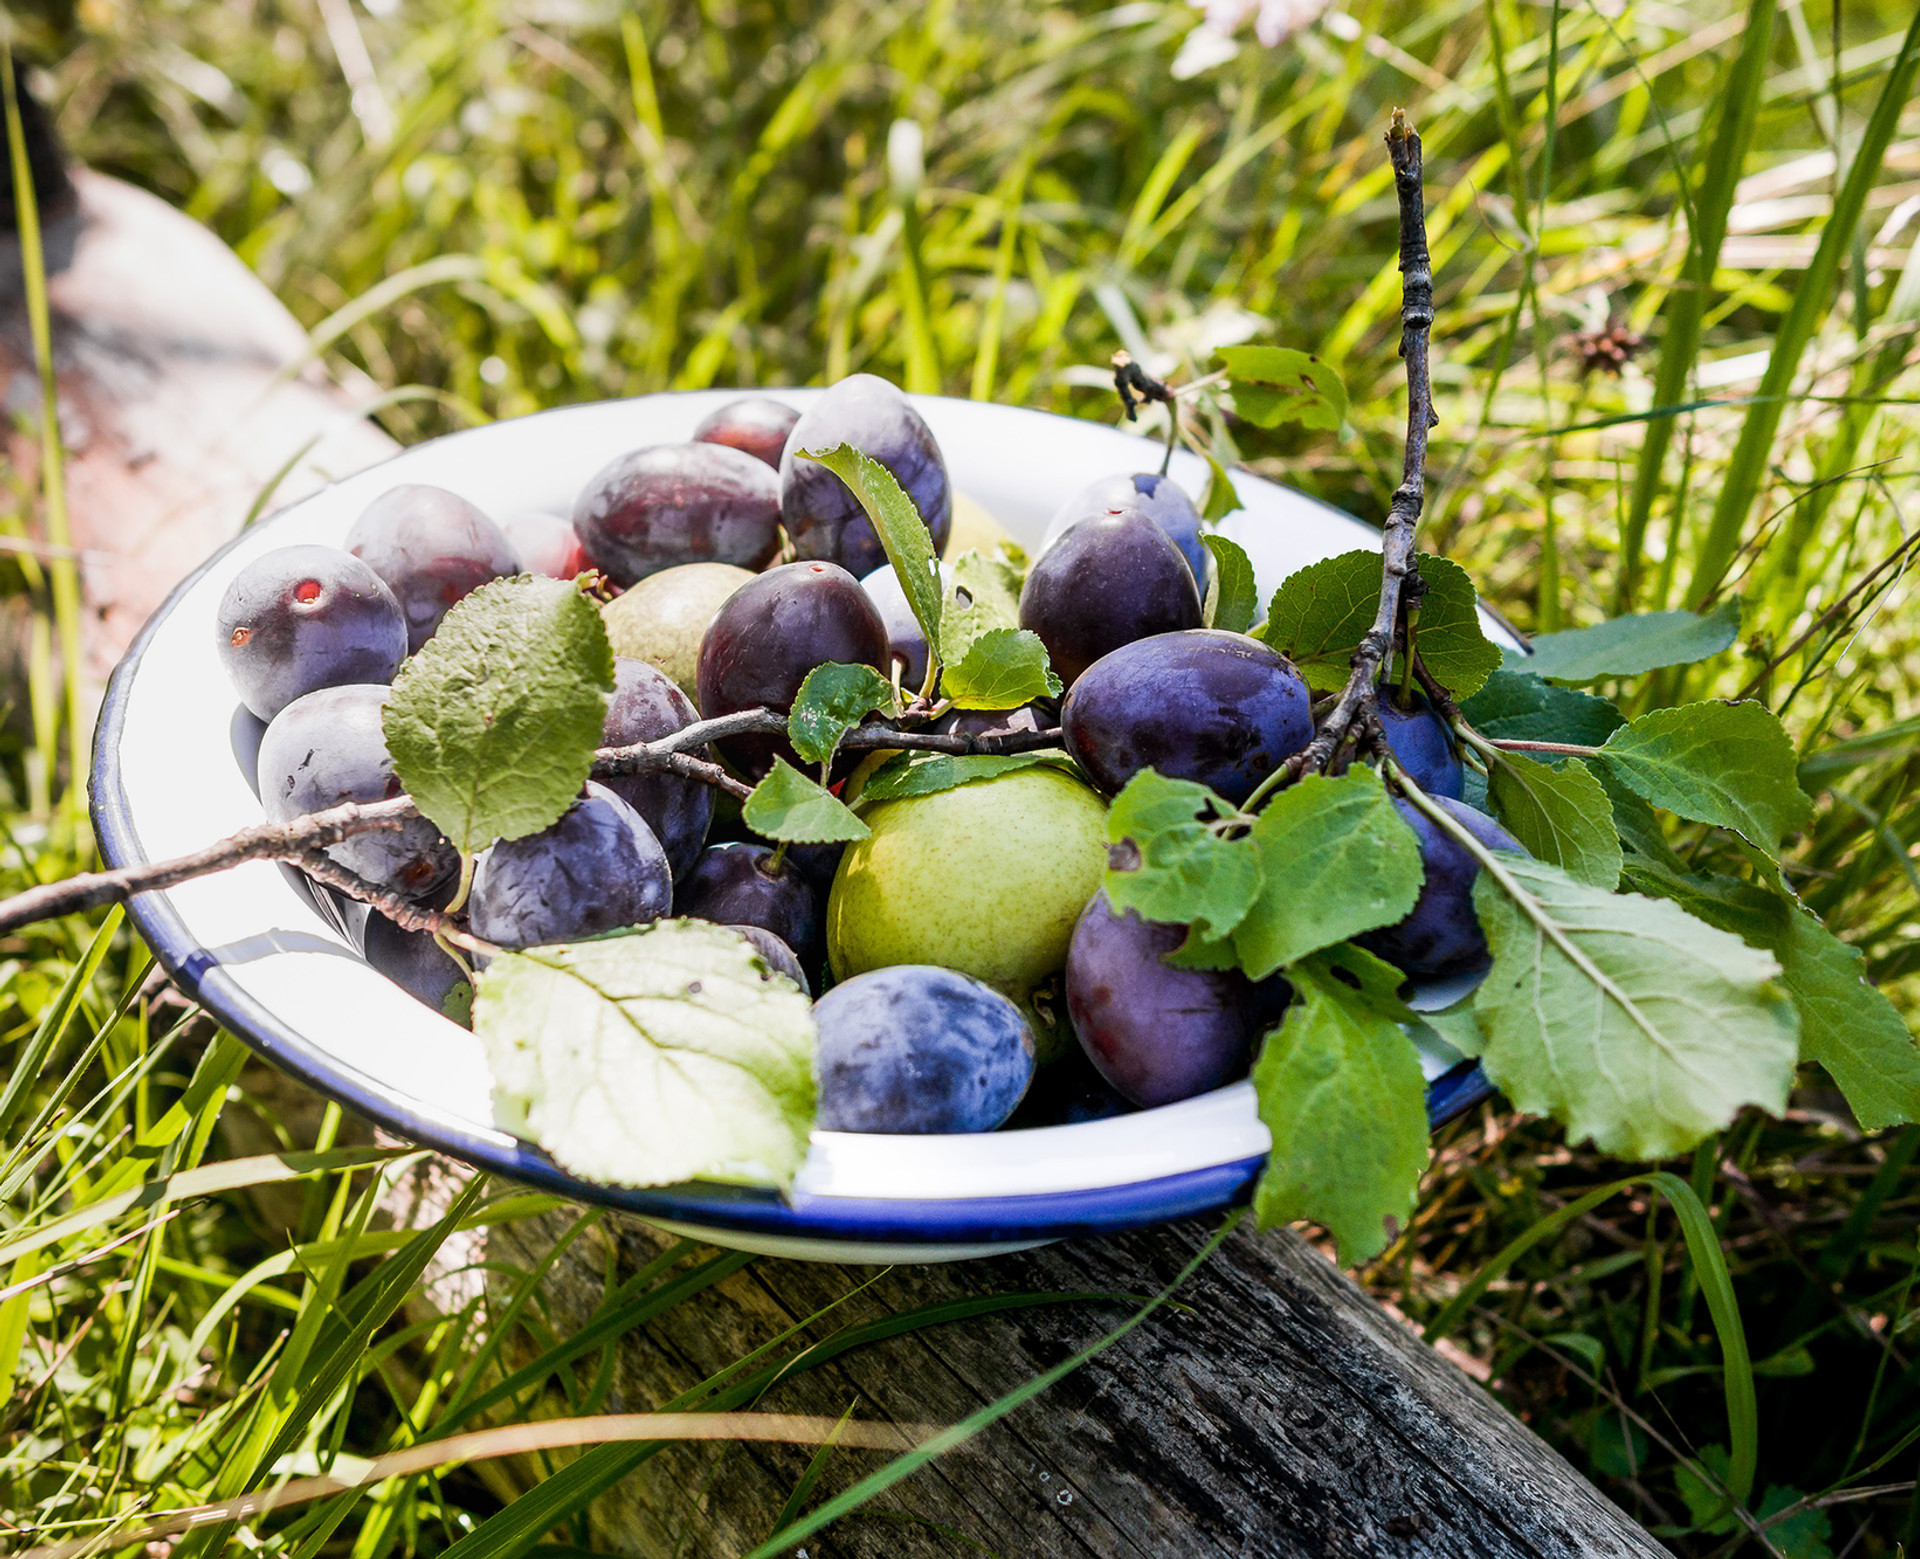 Wild plums and pears